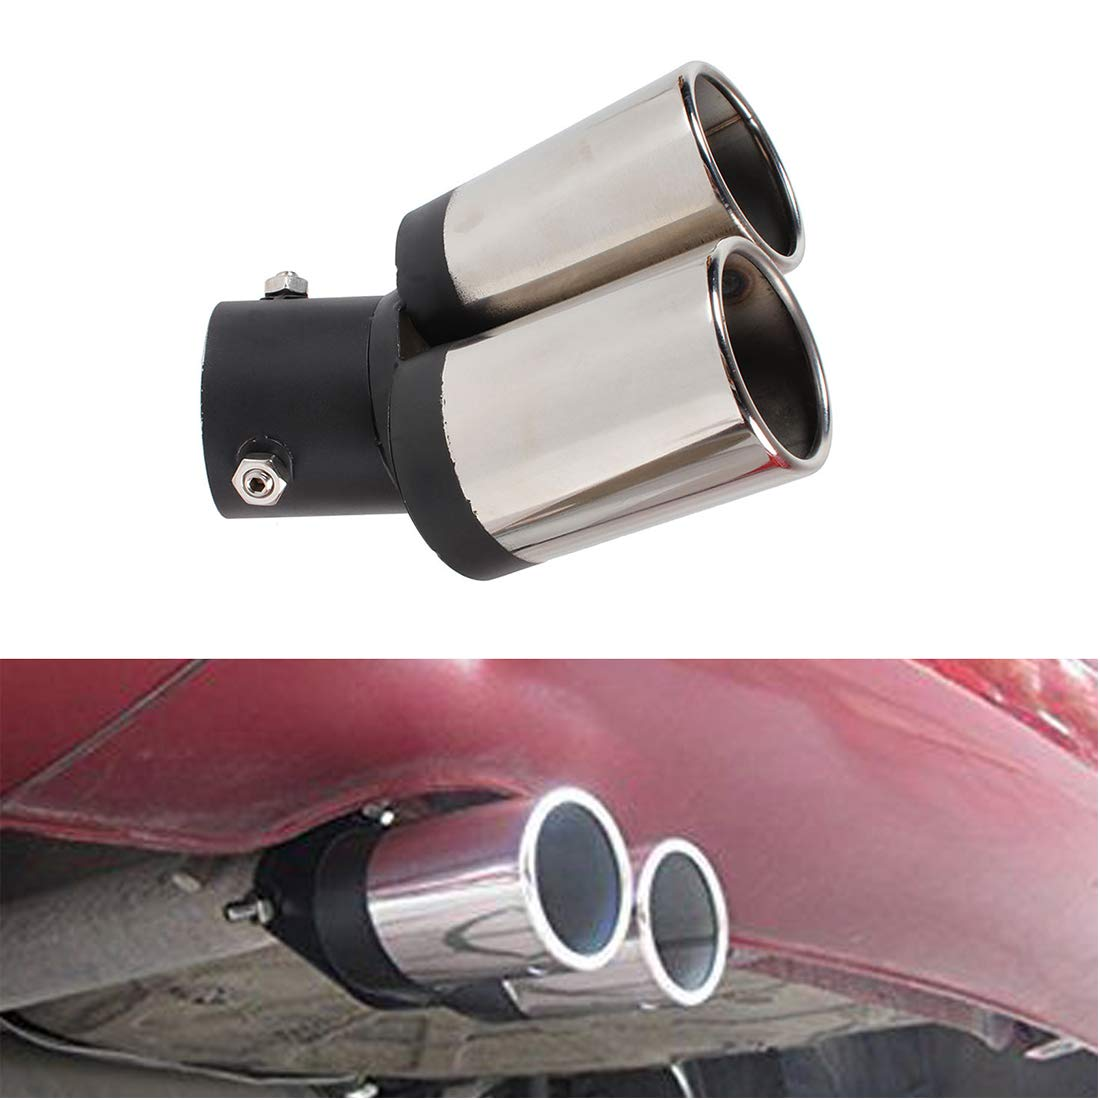 sourcingmap Car Exhaust Muffler Tail Pipe Trim Decorative Tip 75mm Inlet